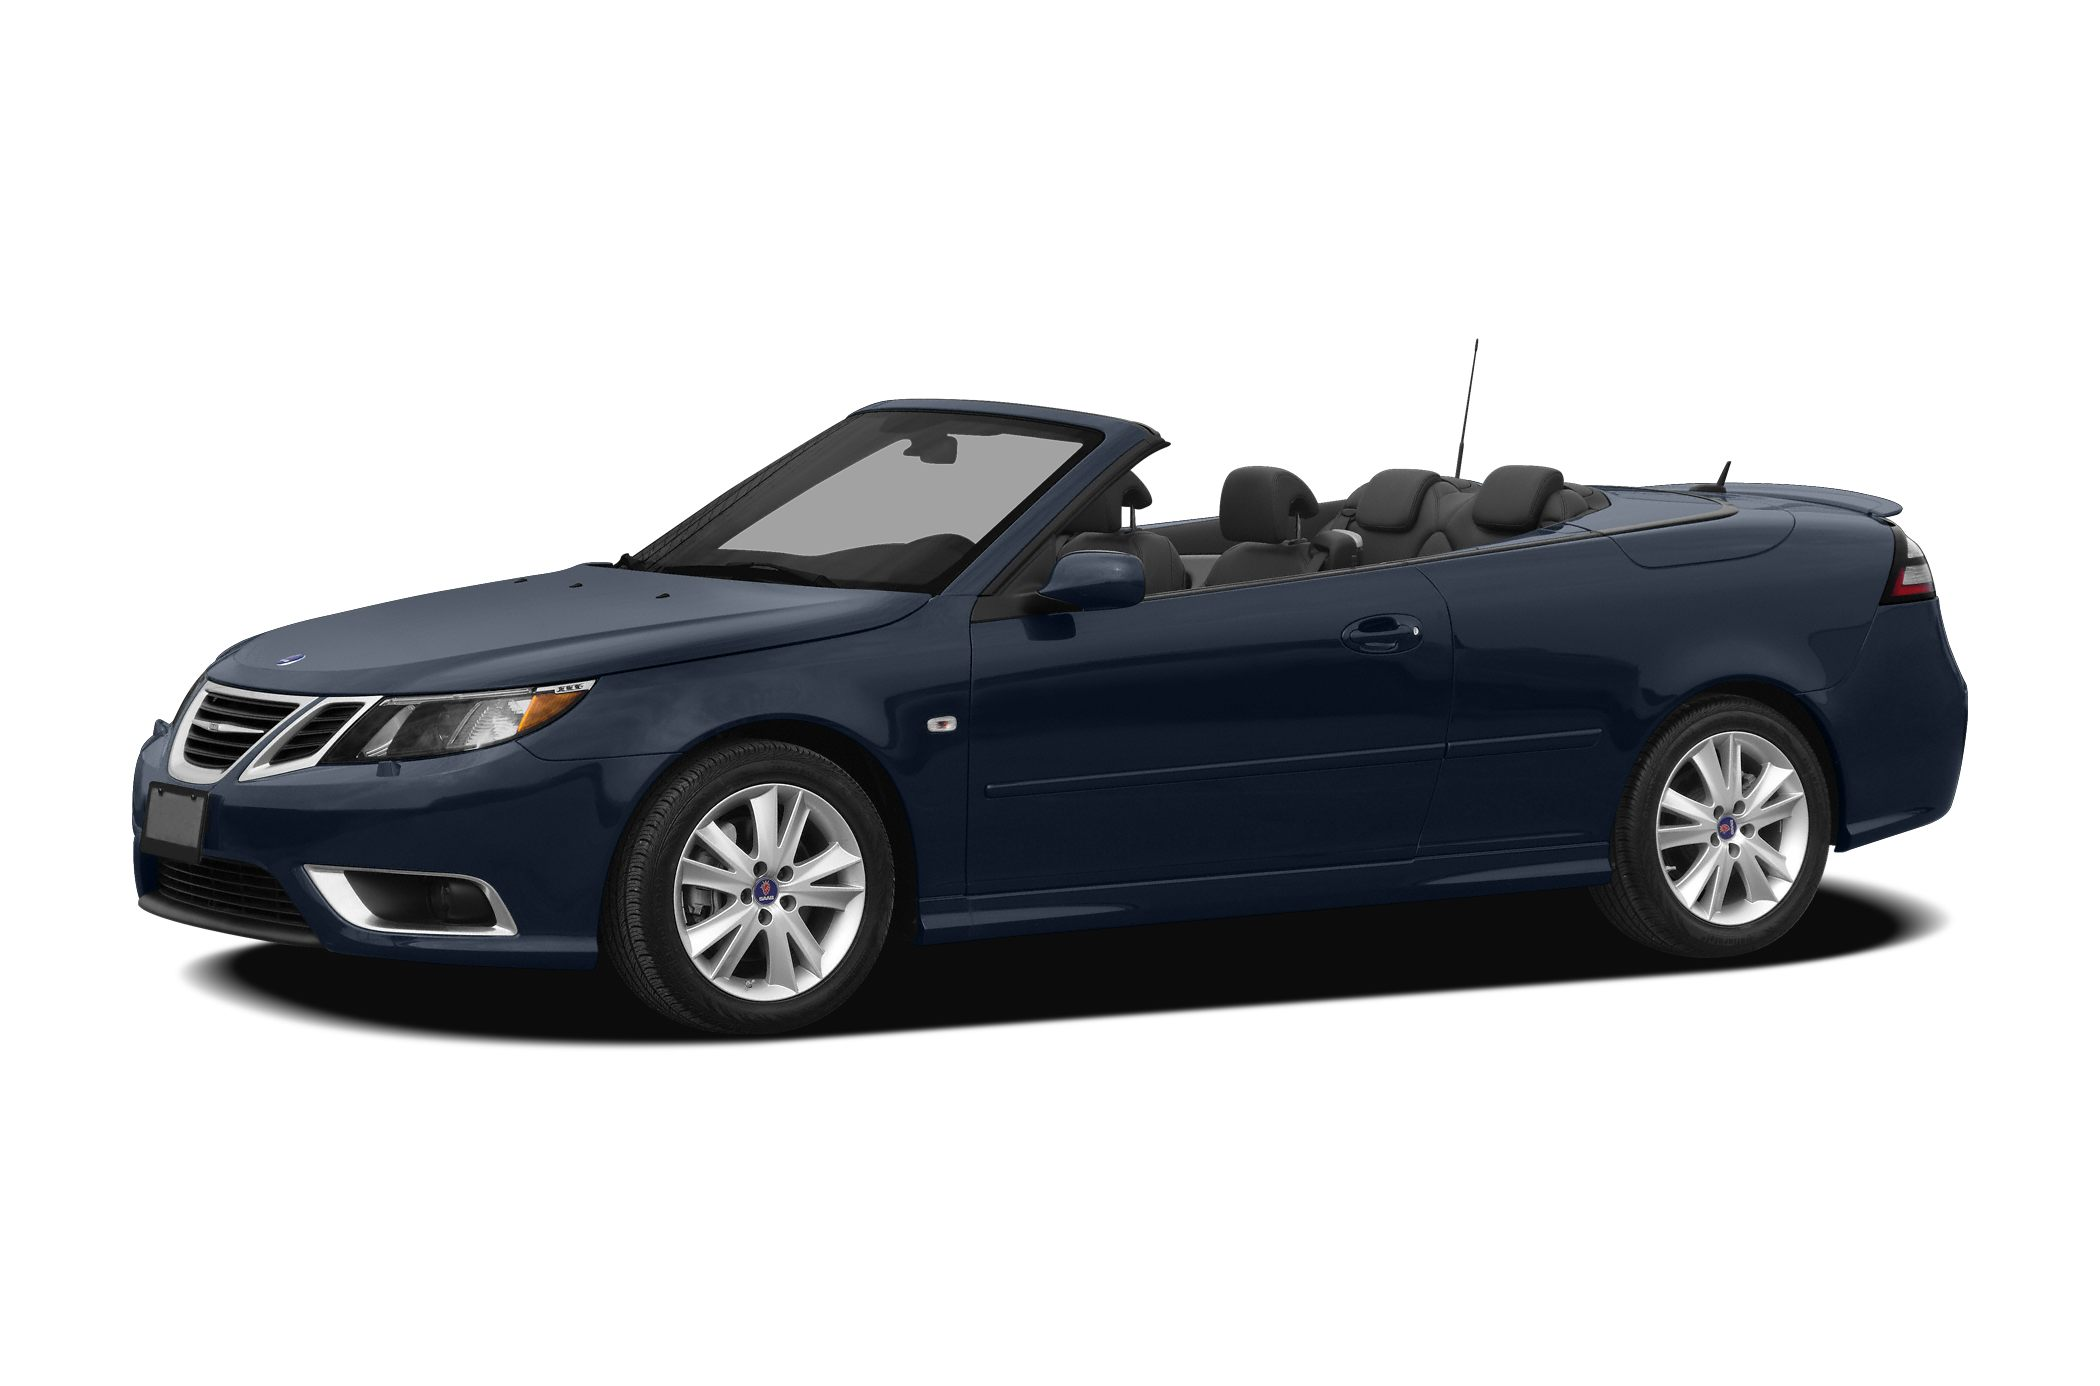 2010 Saab 9-3 20T OUR PRICESYoure probably wondering why our prices are so much lower than the